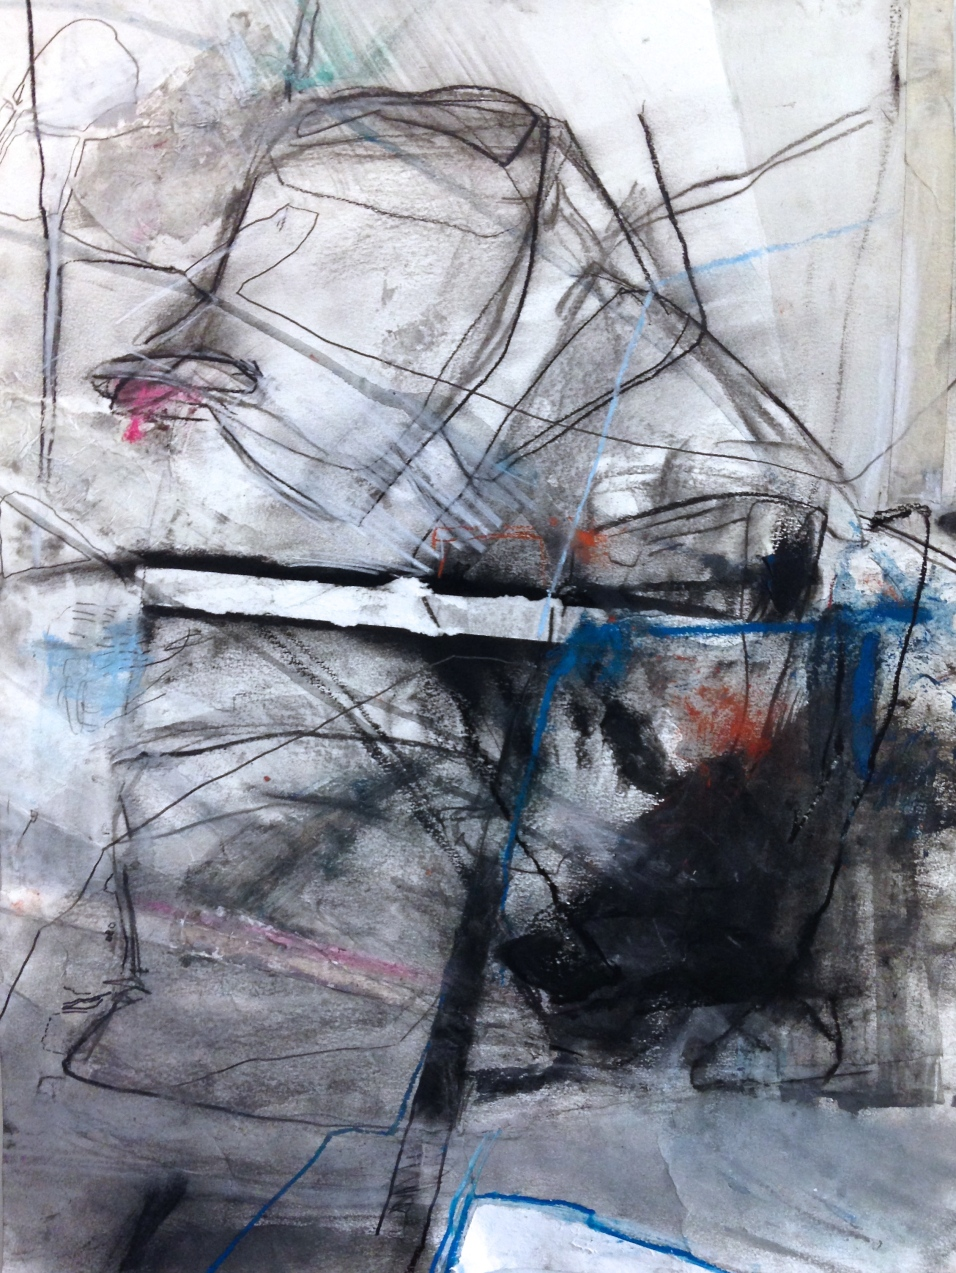 Twine and Trinity, III - mixed media on paper - 24x18 inches - 2014